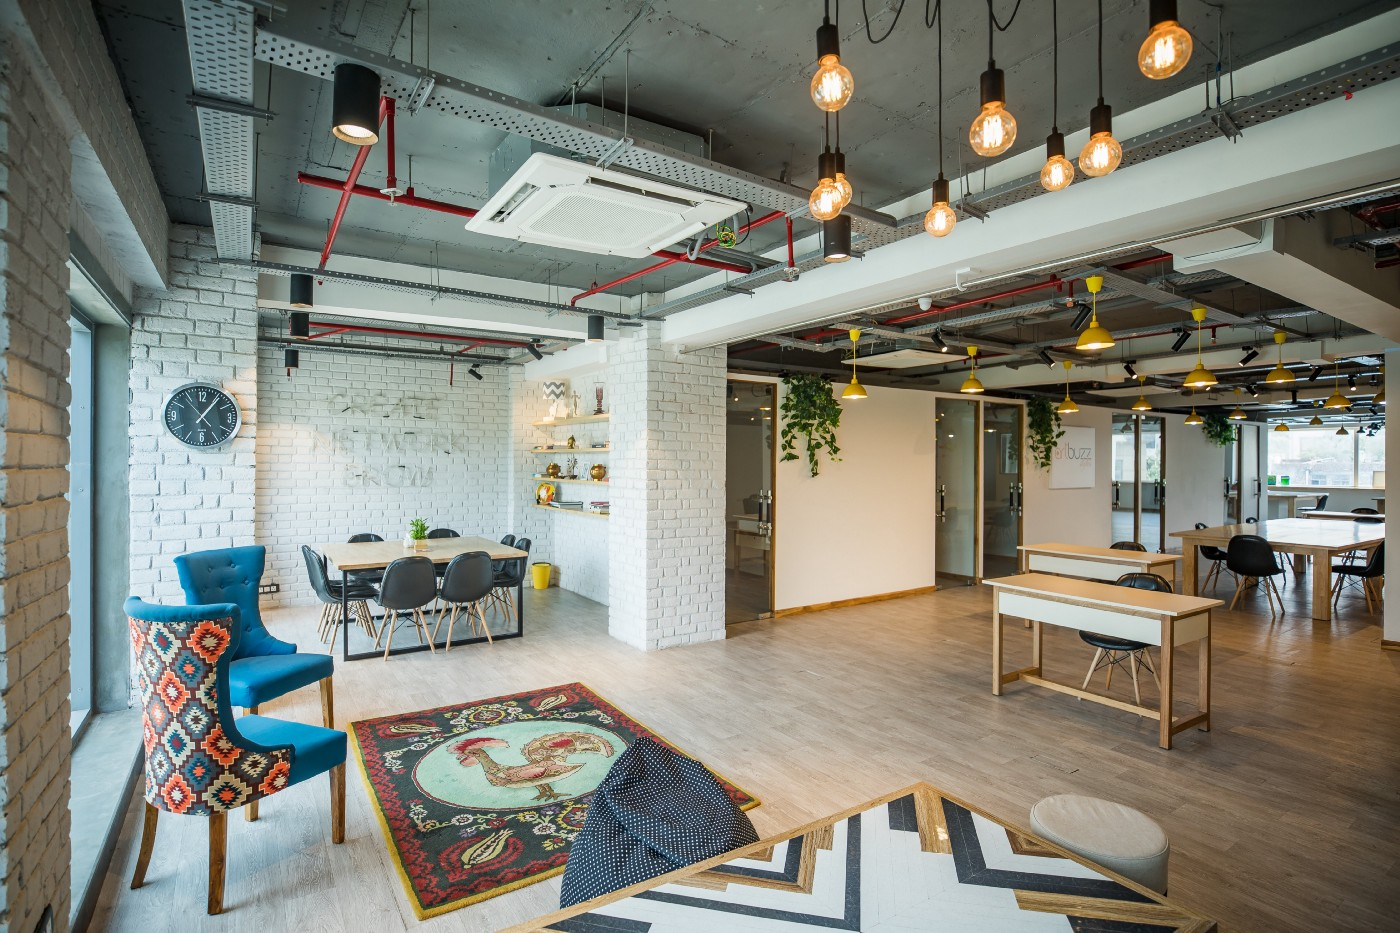 Industrial coworking office with desks, lounge chairs, and hanging ceiling lights.